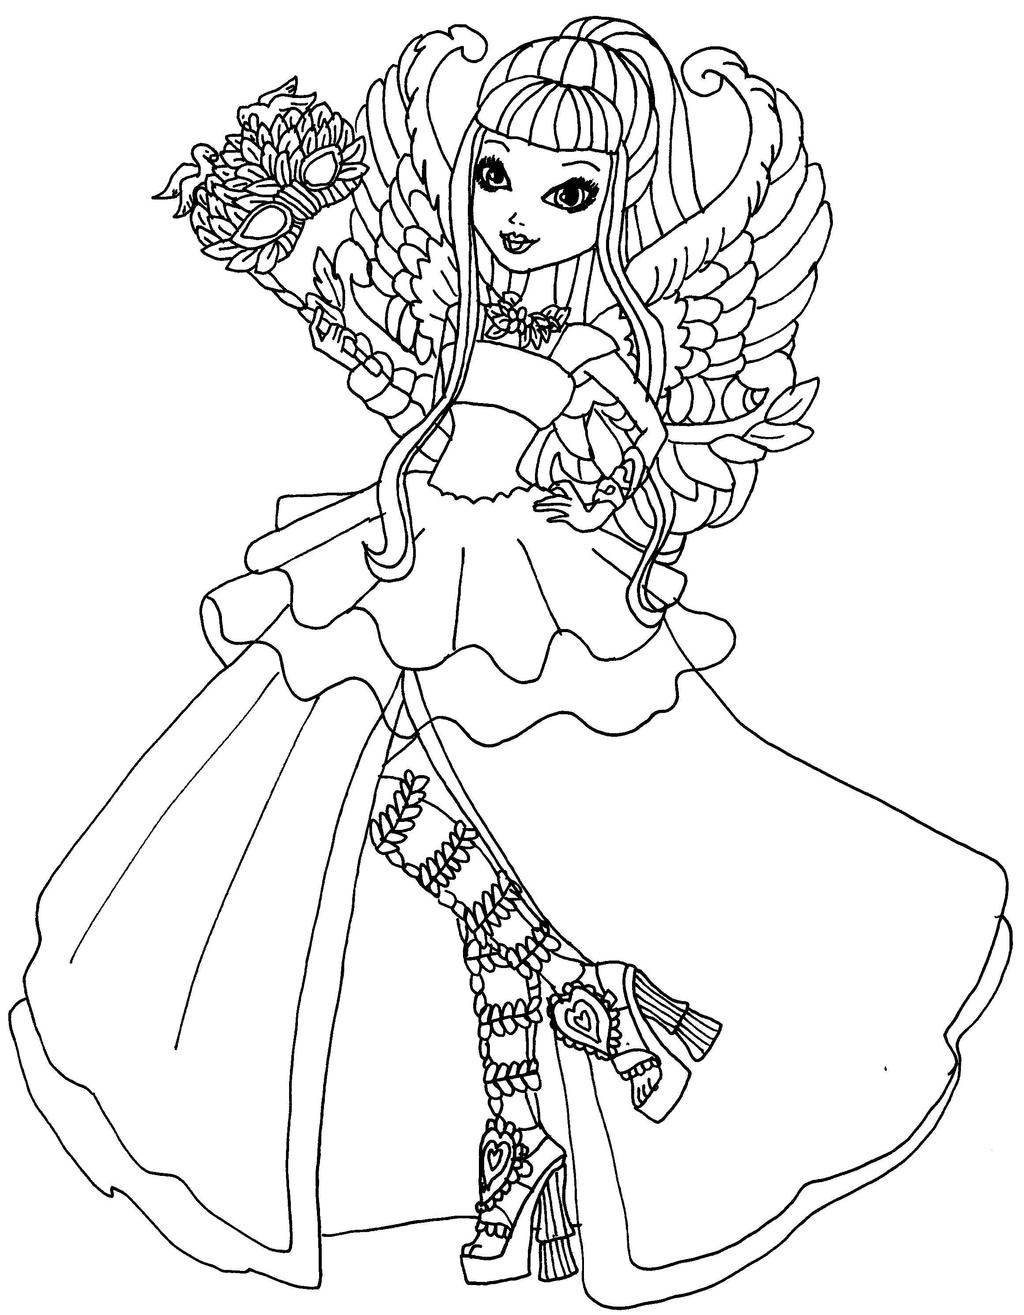 Printable coloring pages ever after high - Printable Coloring Pages Ever After High 5